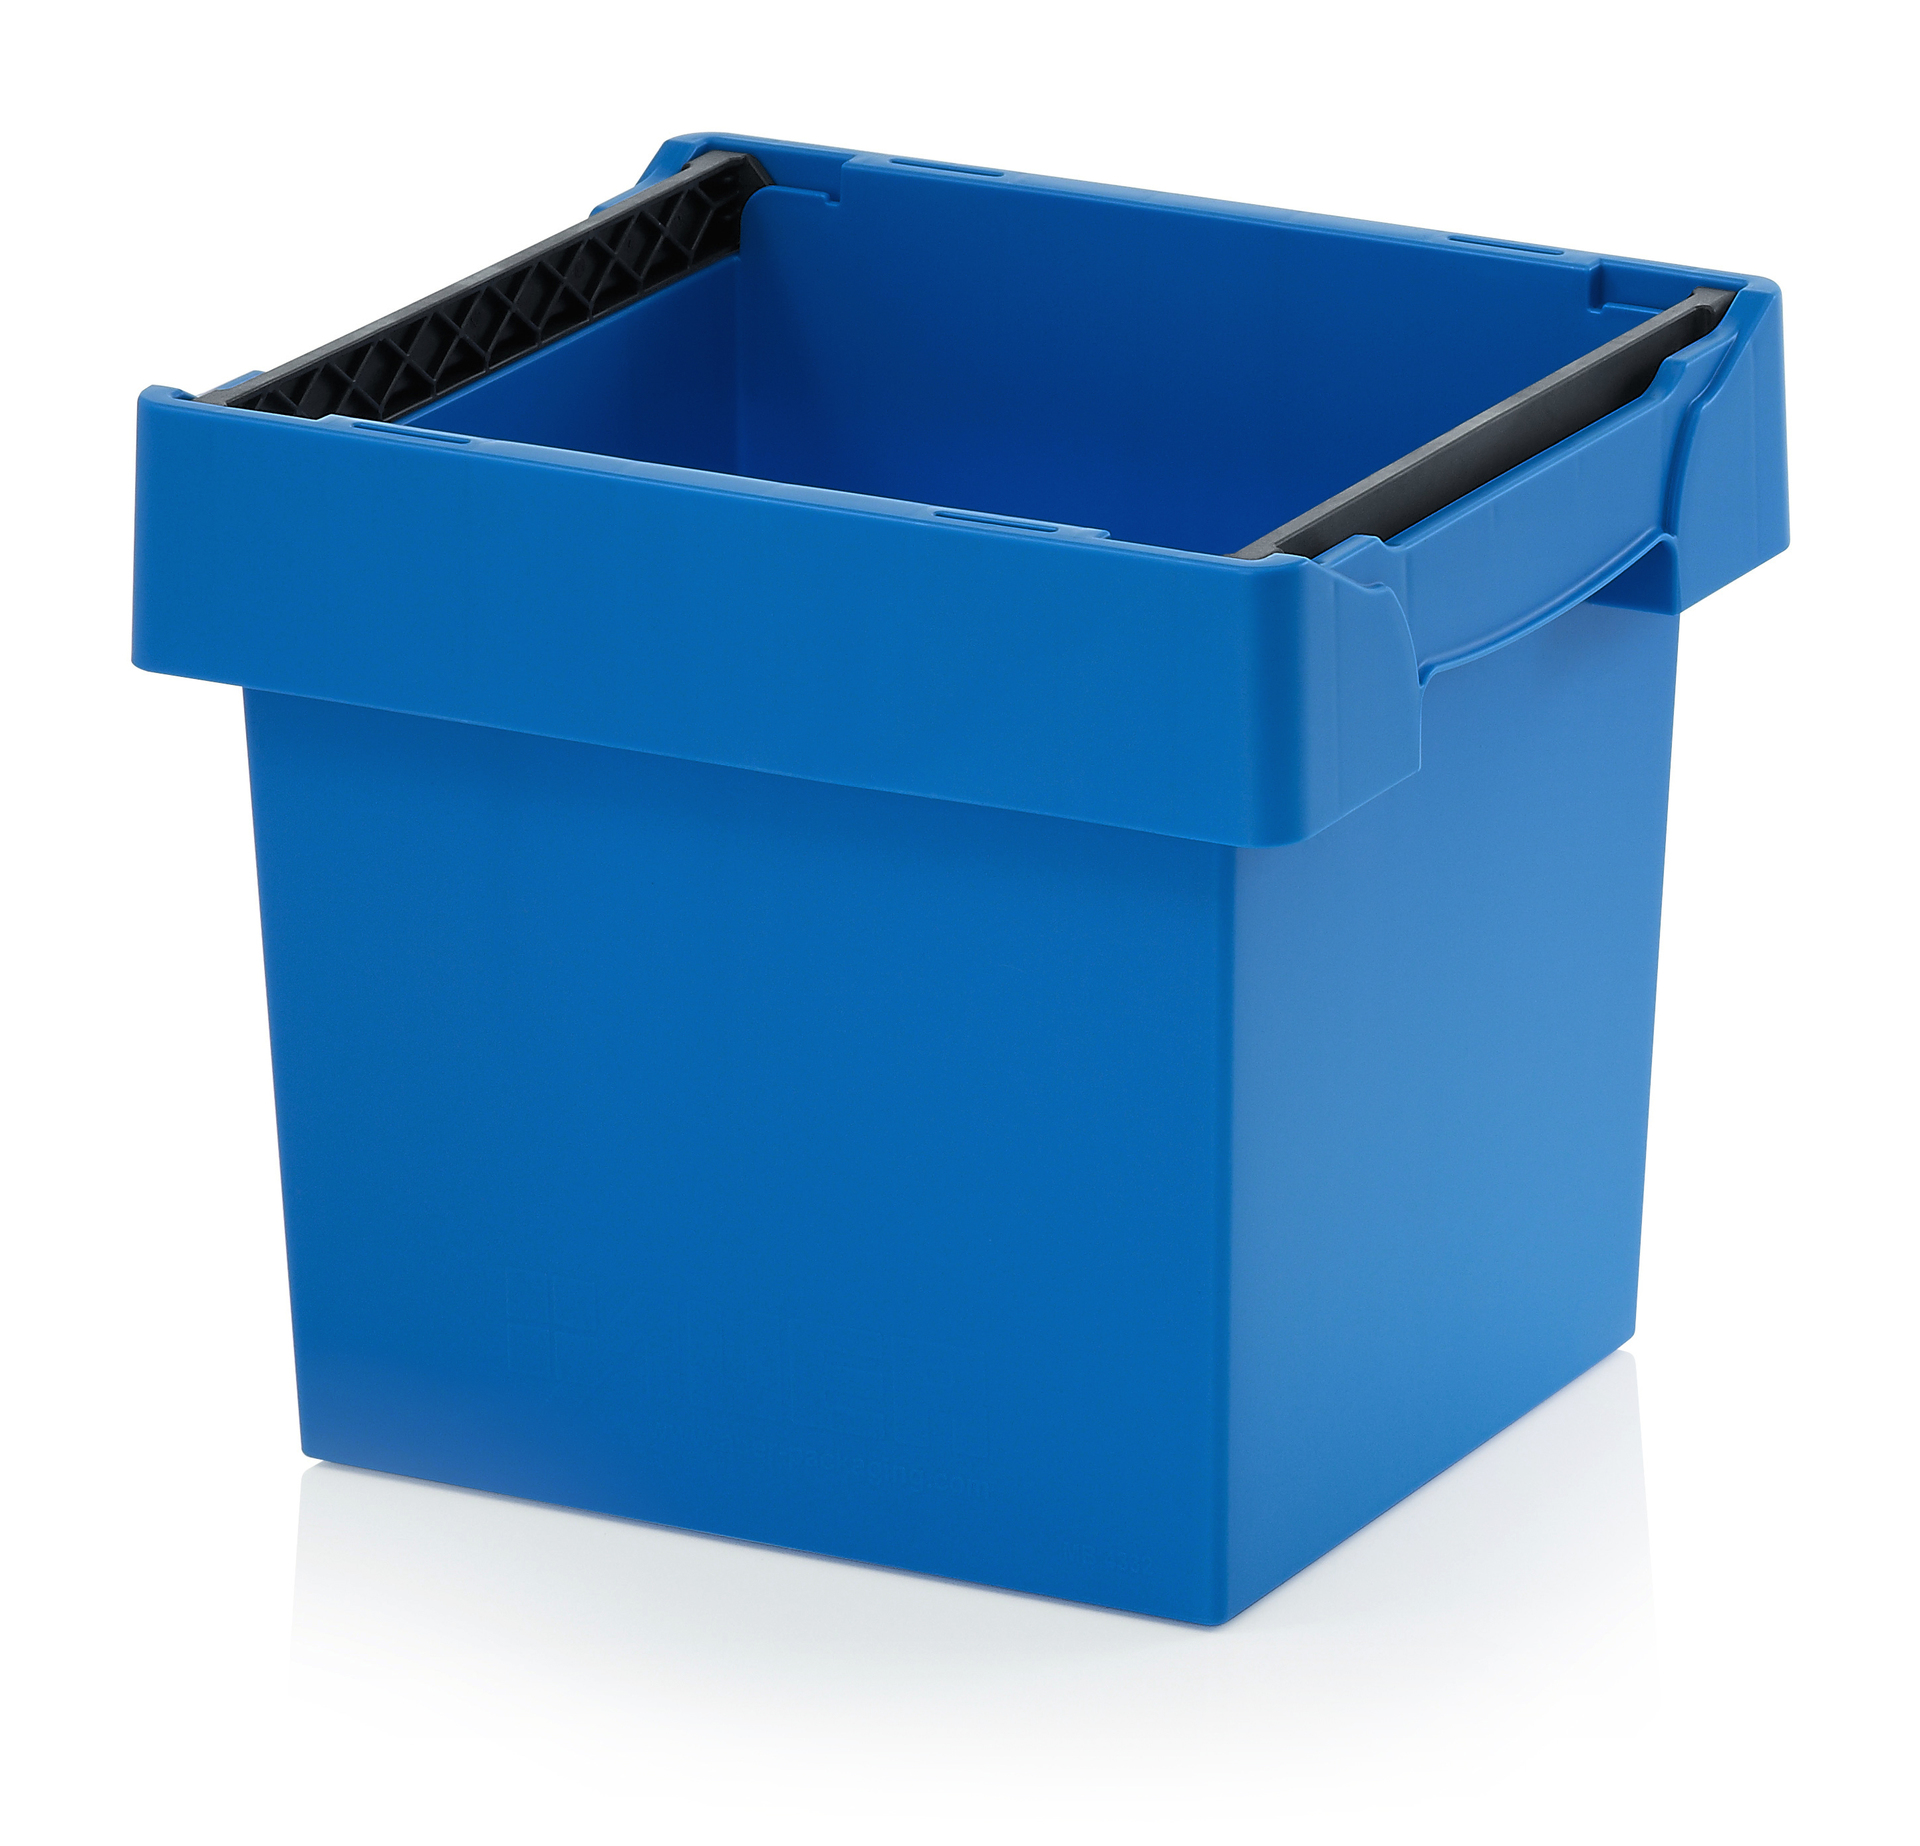 RC4320F_1 Reusable Containers - Plastic Mouldings Northern